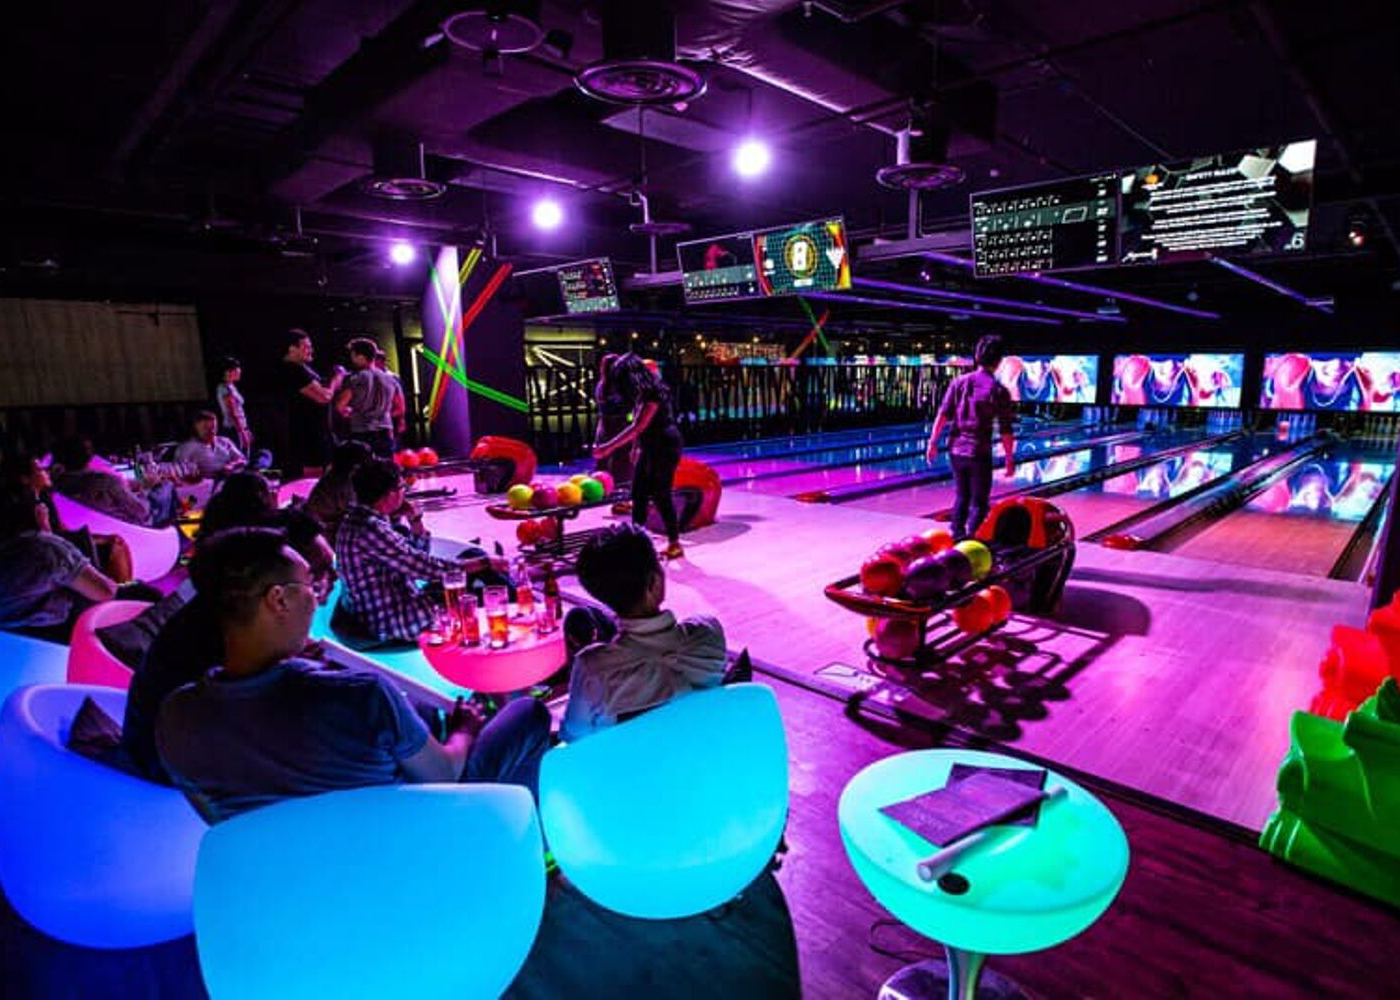 Things to do at night in Singapore | Play bowling | K Bowling Club